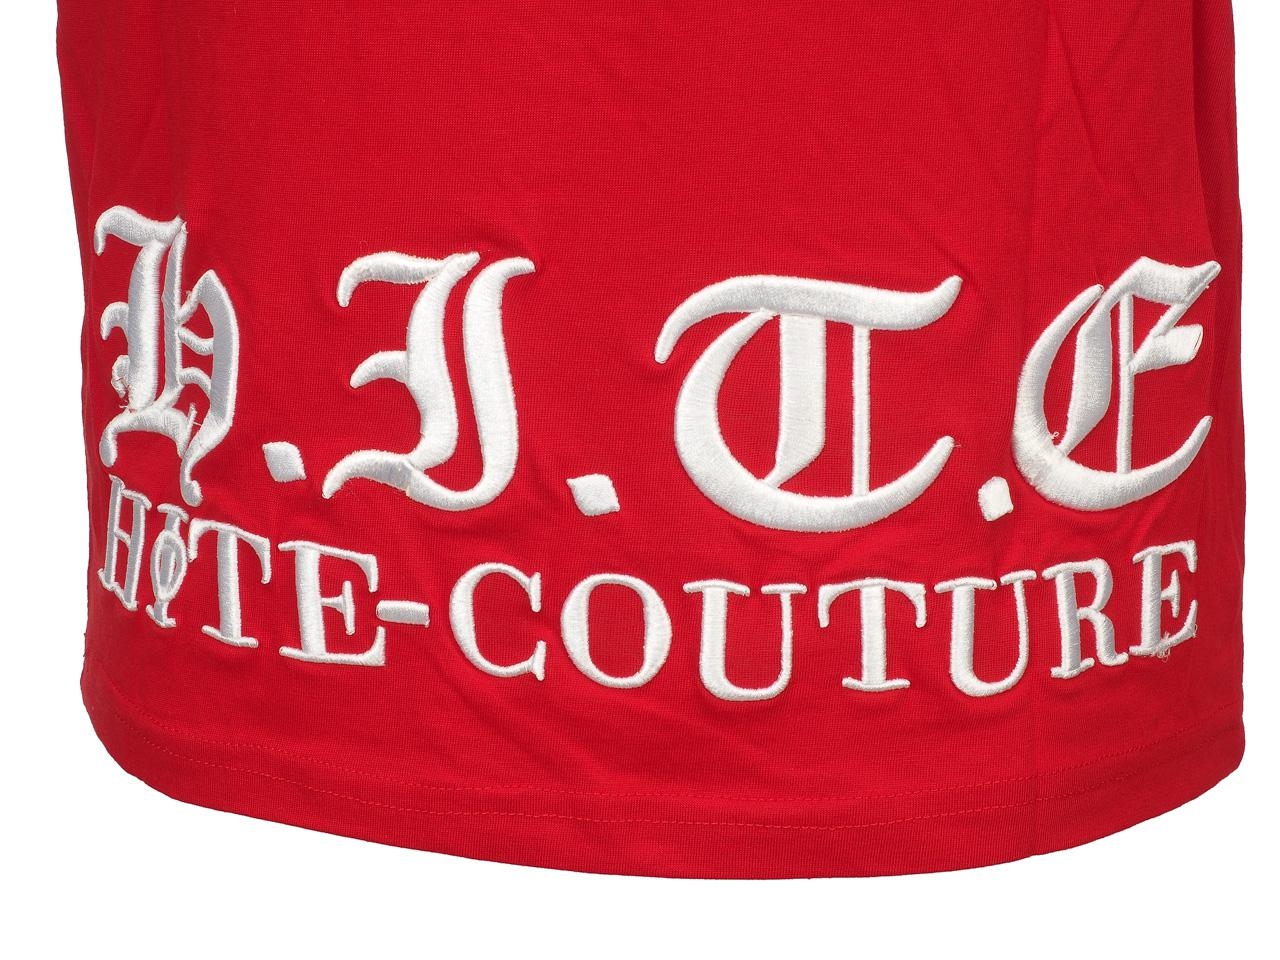 Short-Hite-Couture-Mount-Red-Mc-Tee-Red-11554-New thumbnail 3